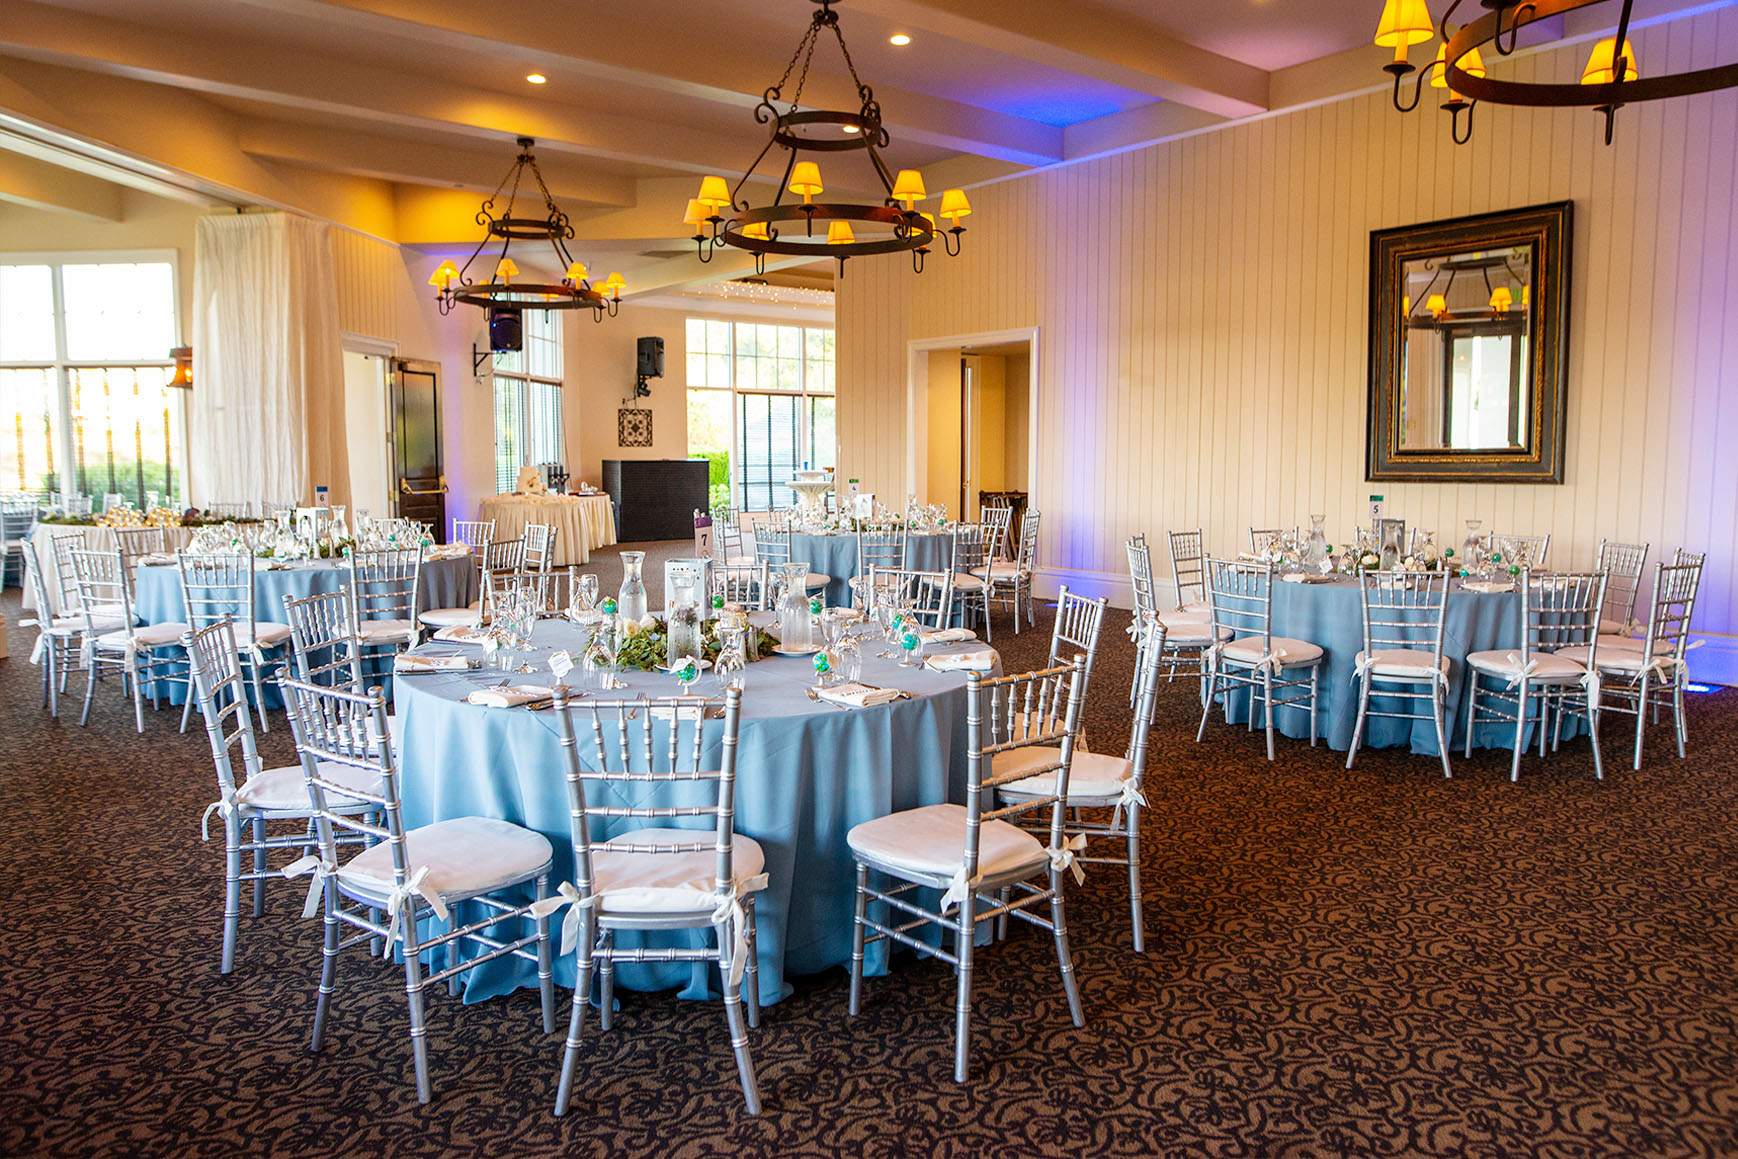 Charming reception room - Eagle Ridge - Gilroy, California - Santa Clara County - Wedgewood Weddings